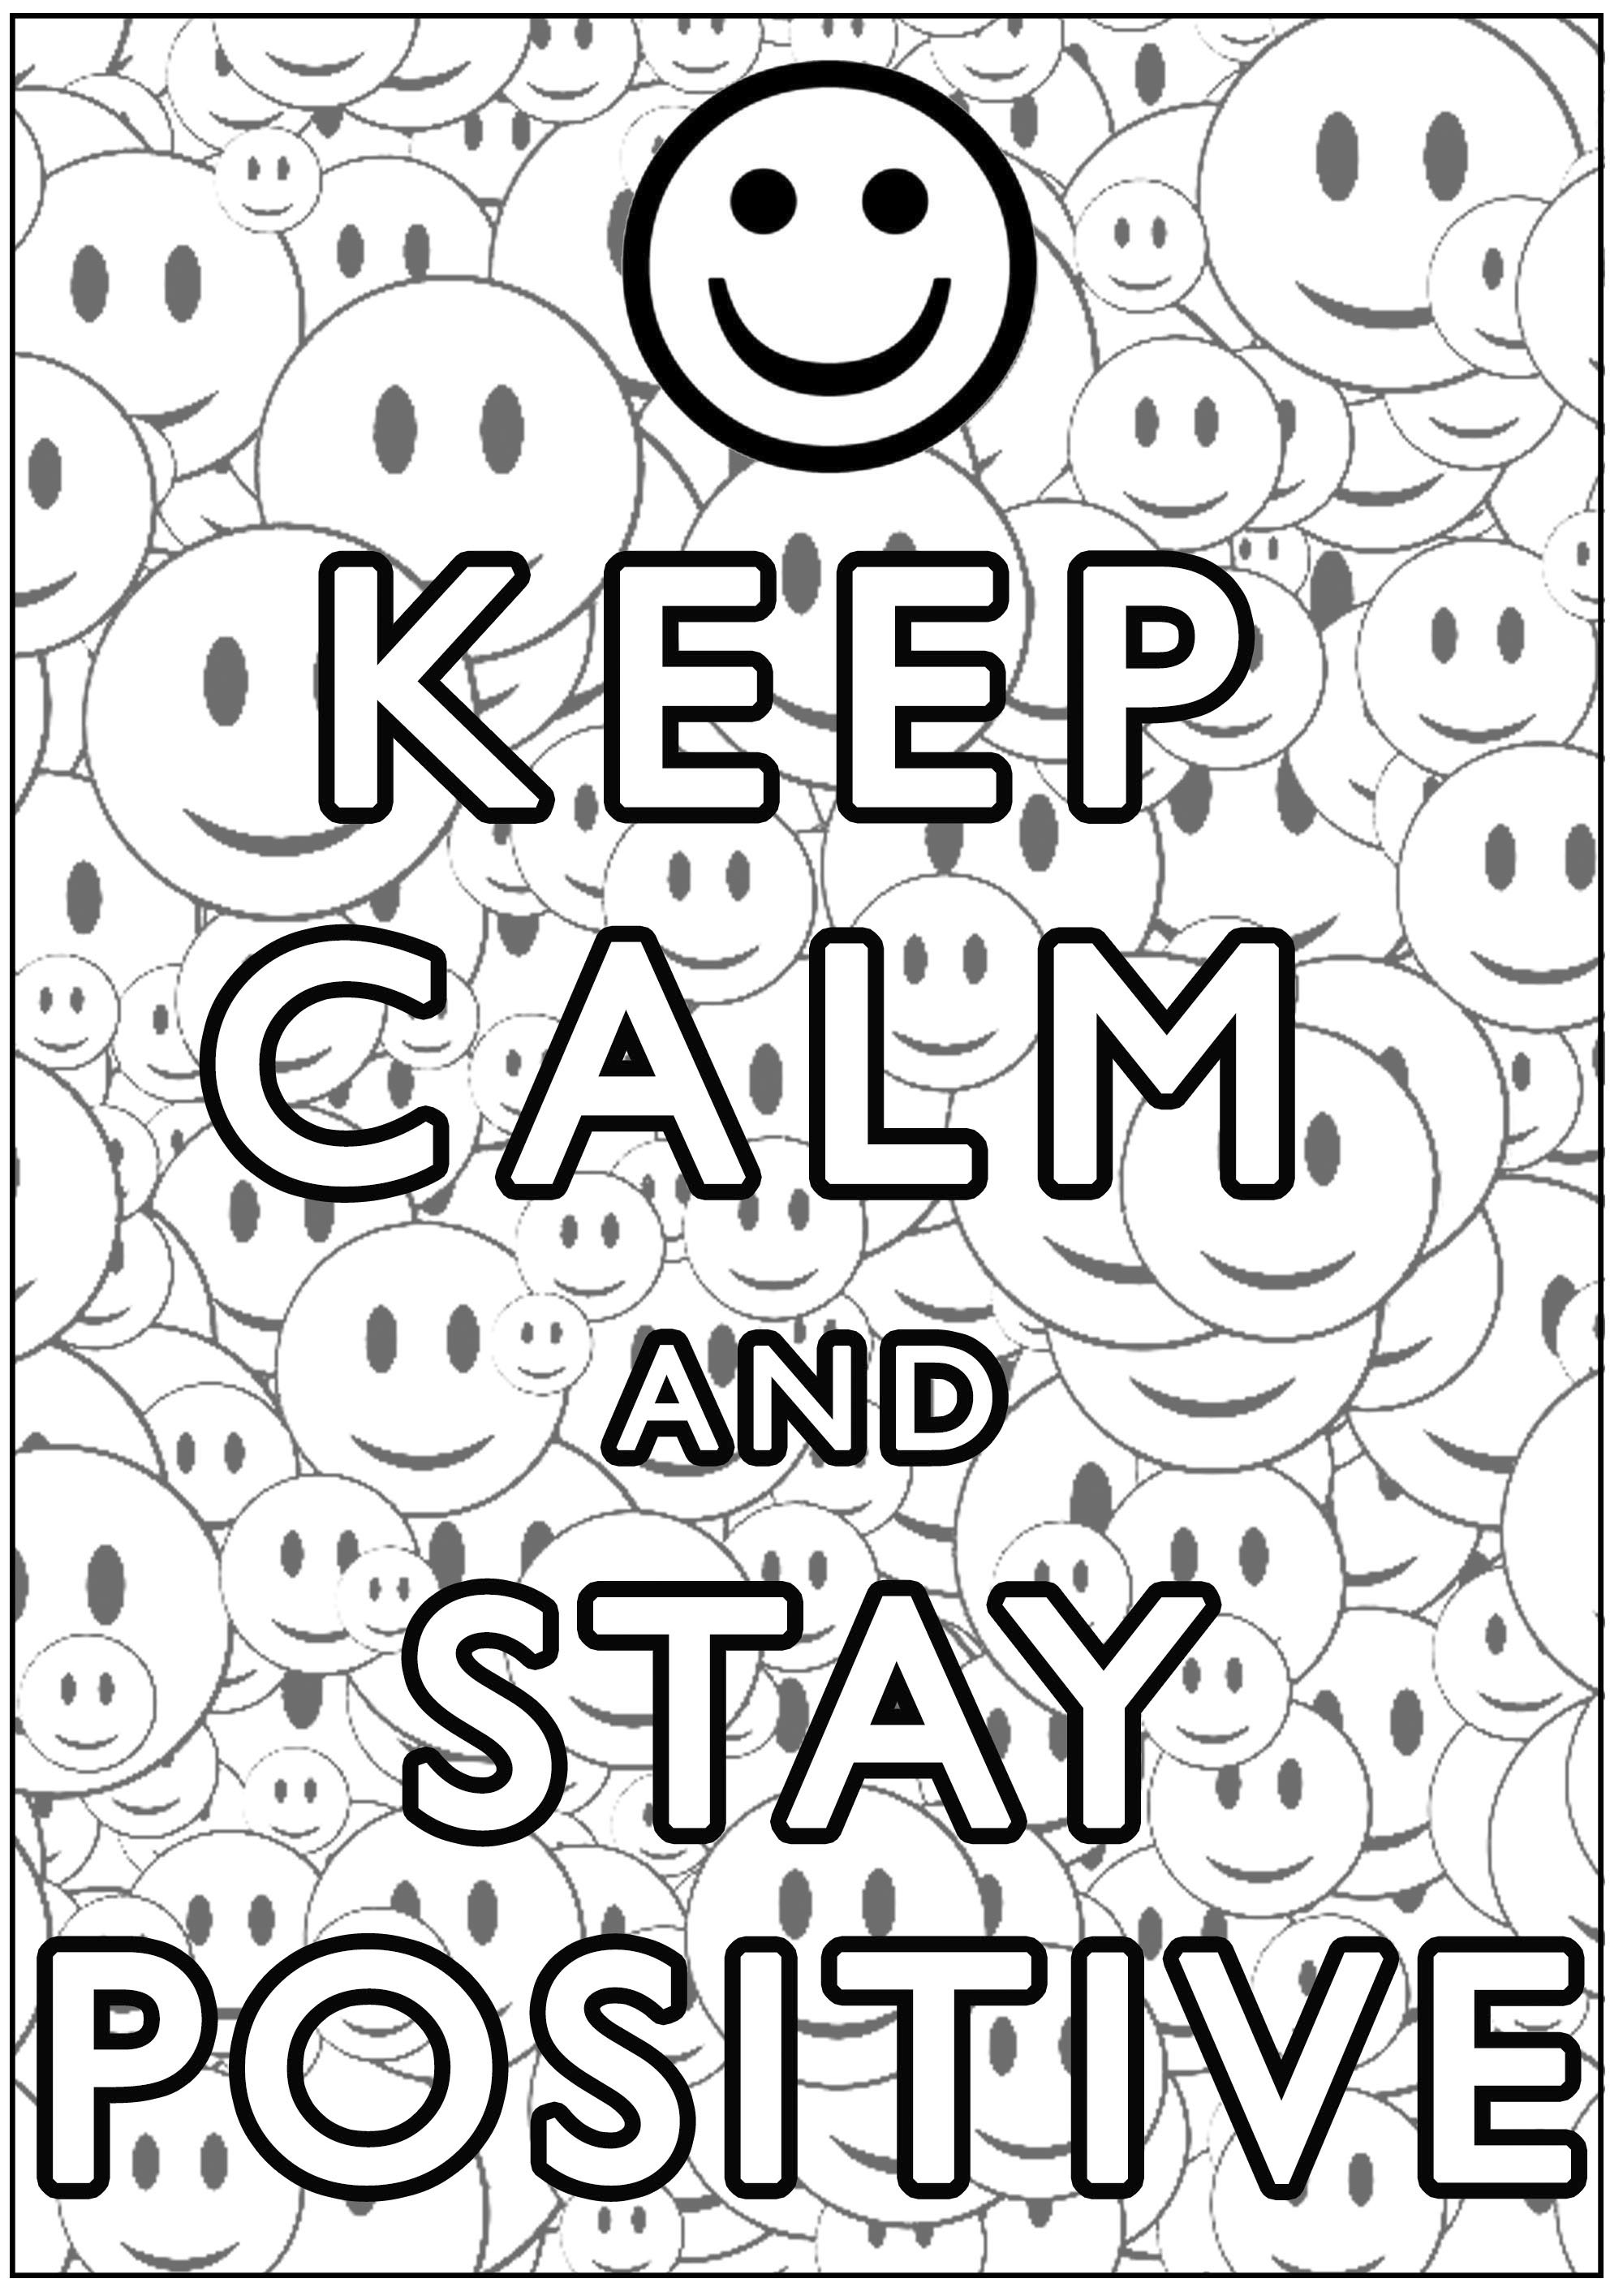 Keep Calm and stay Positive : Smiling smileys are the positiveness